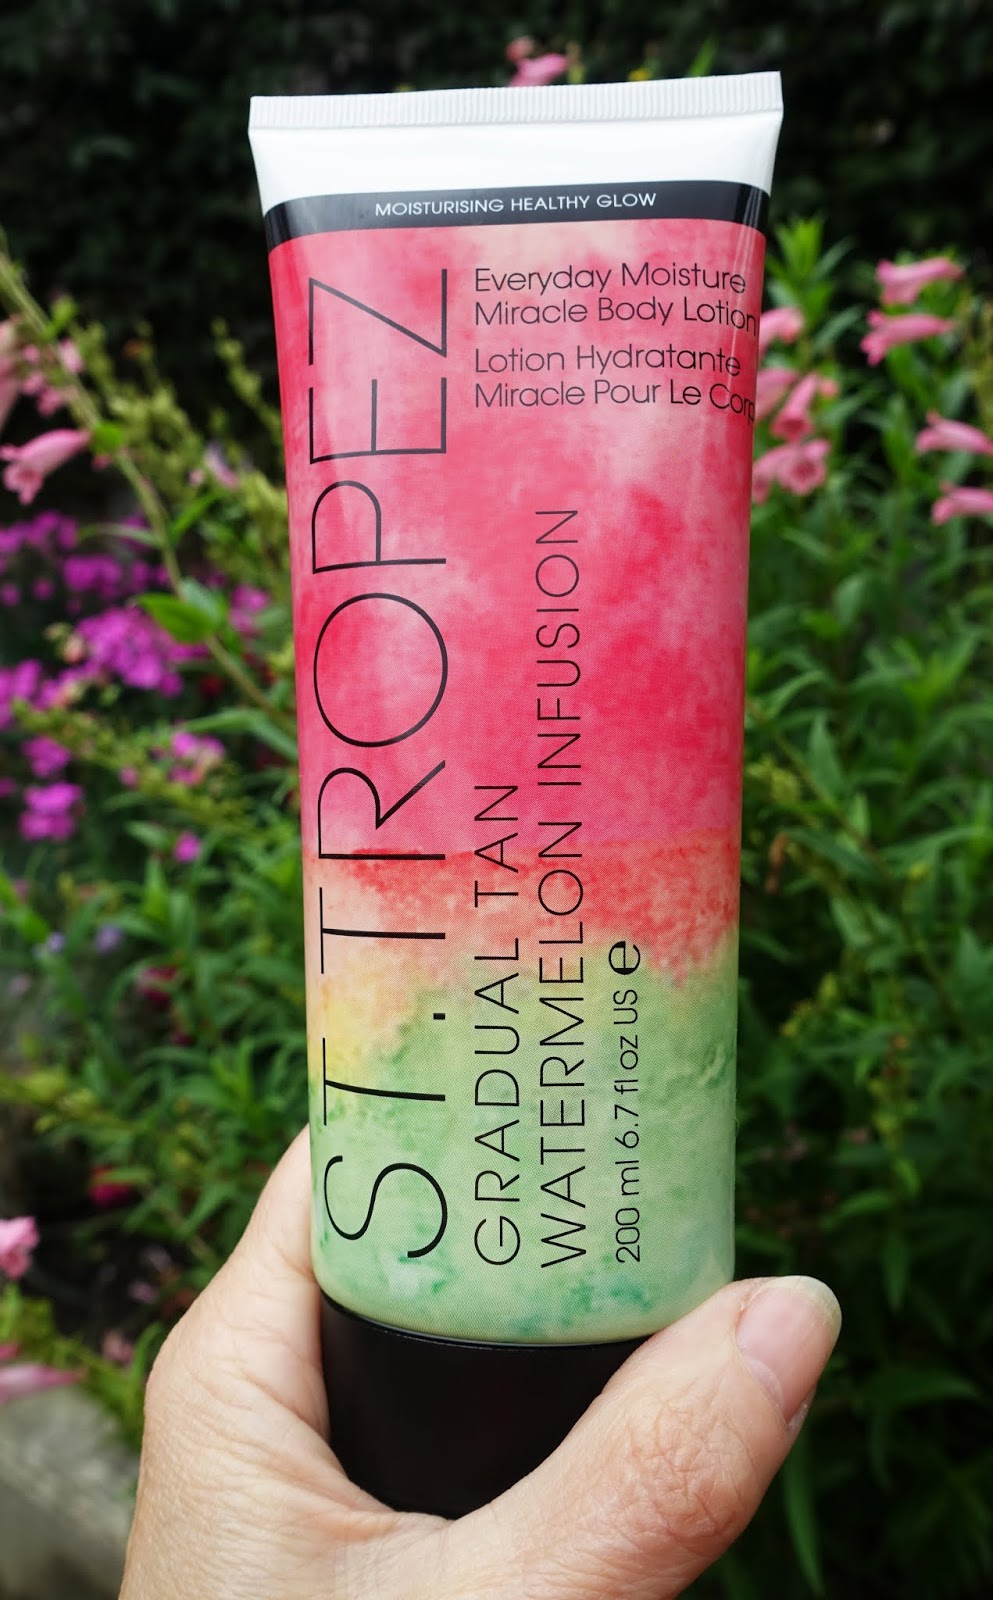 The pink and green bottle of St Tropez Gradual Tan Watermelon Infusion